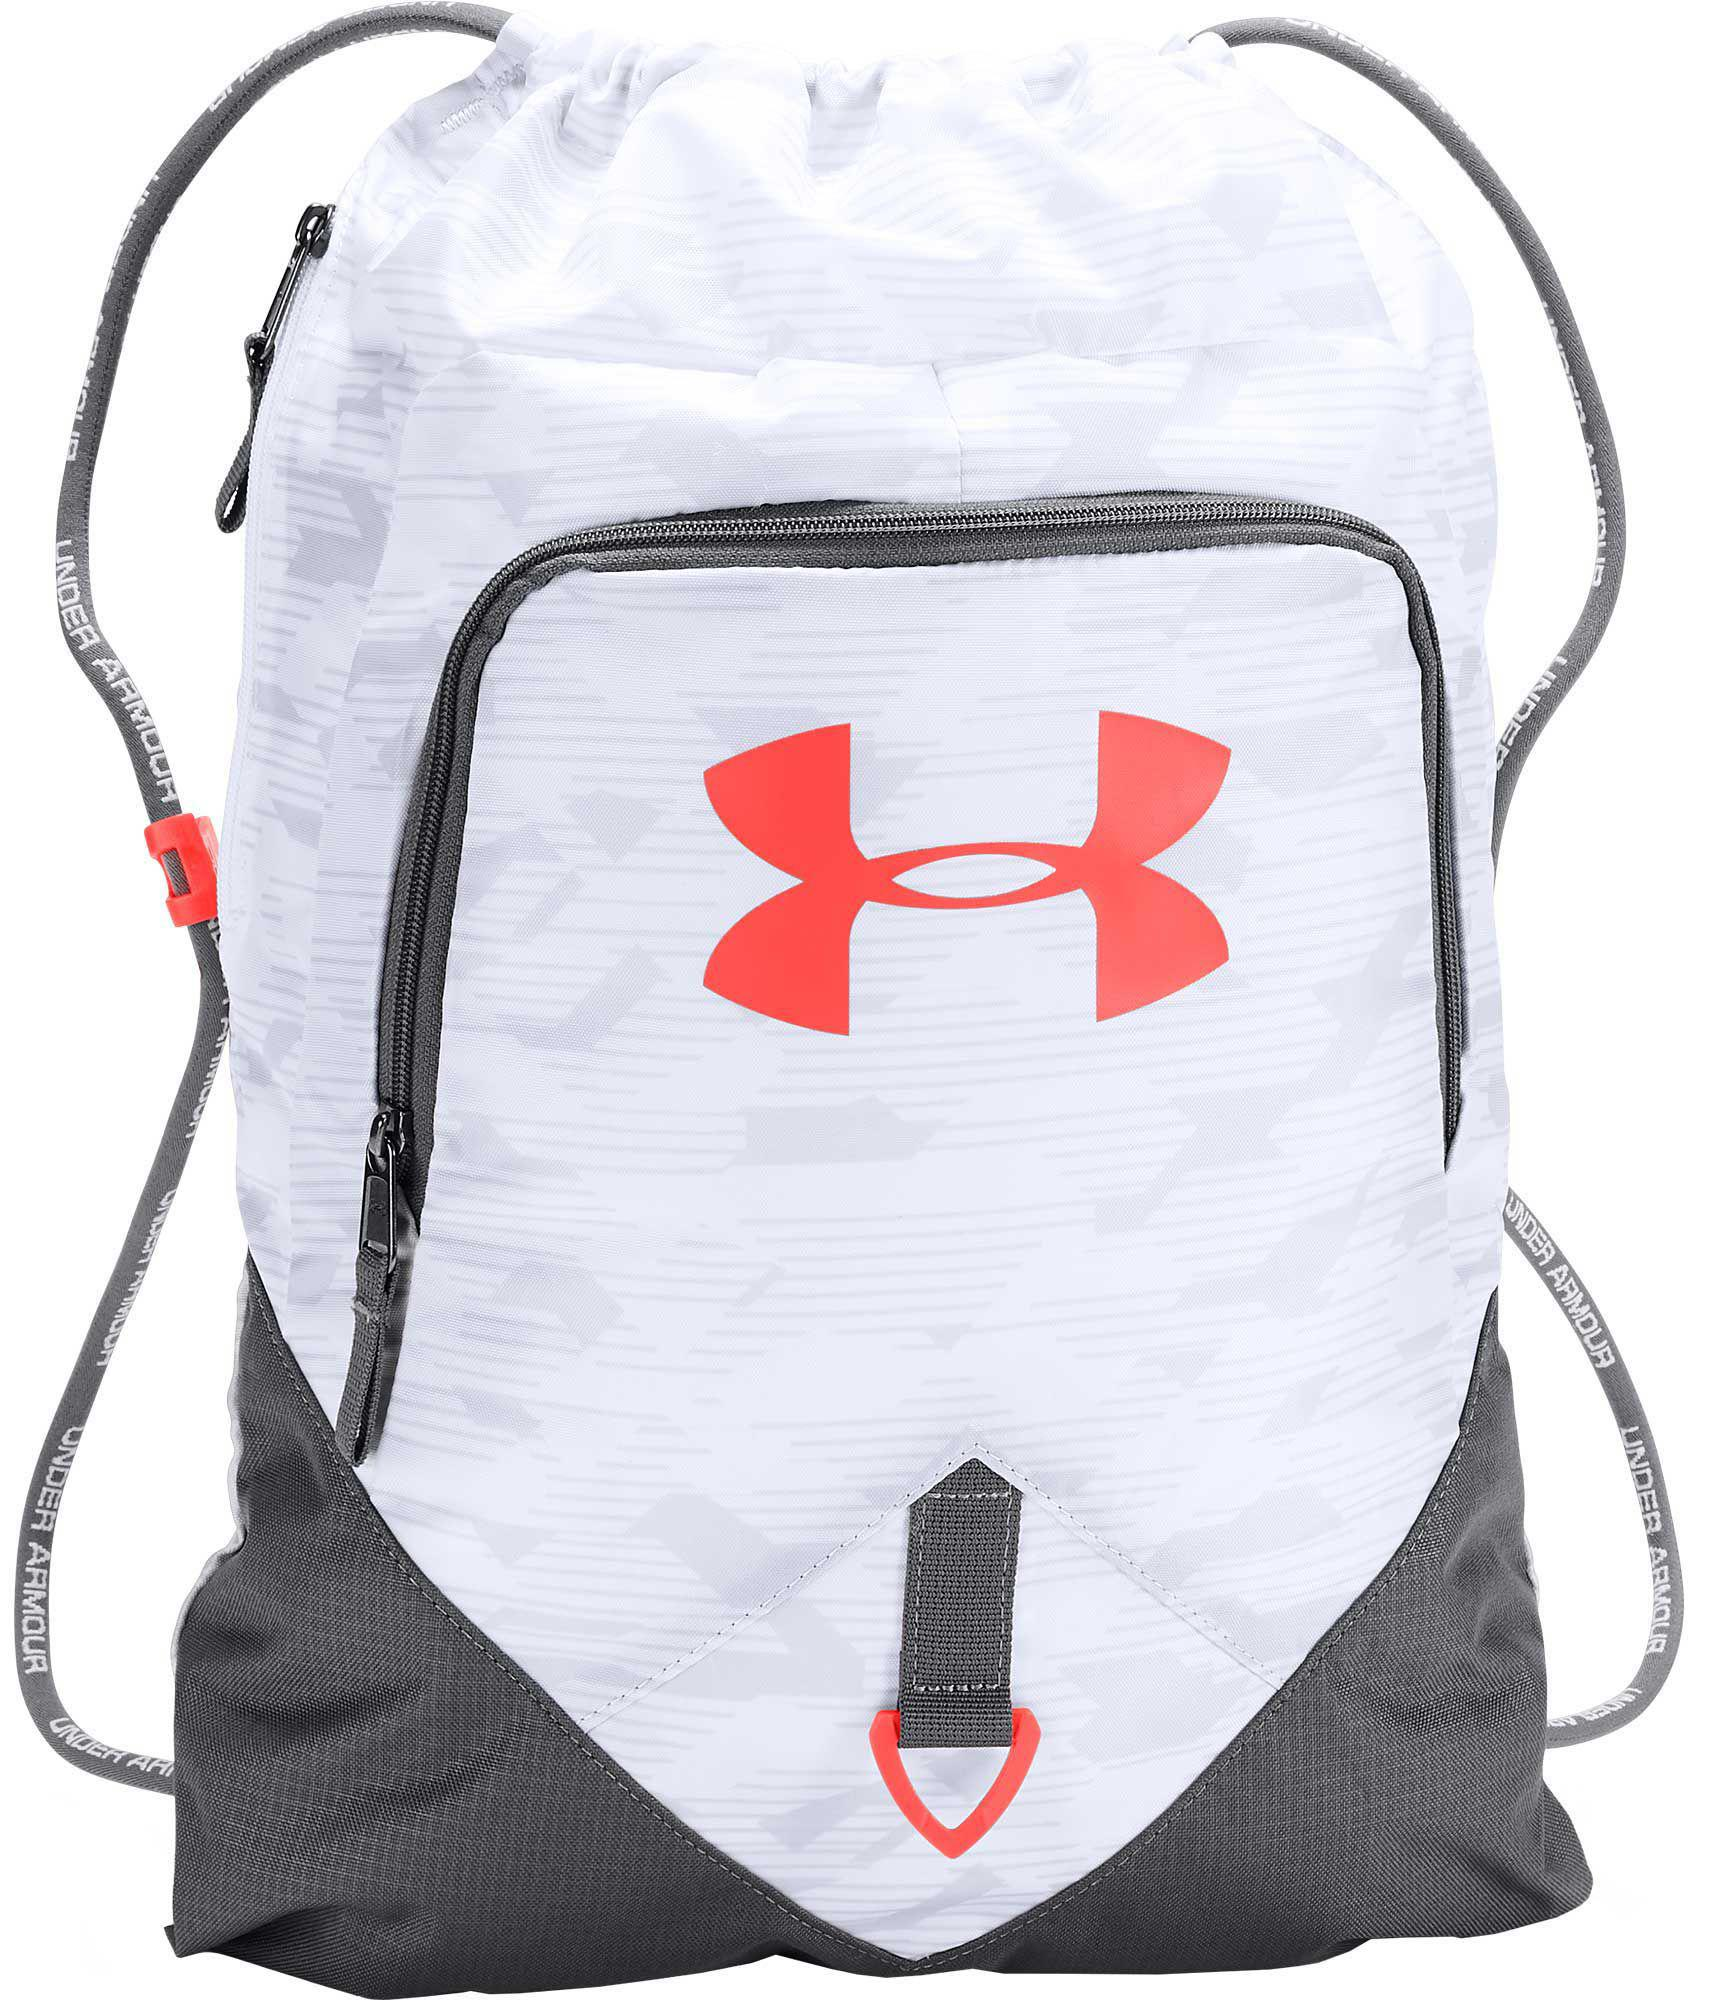 5aa285c3359 Under Armour Undeniable Sackpack in White for Men - Lyst